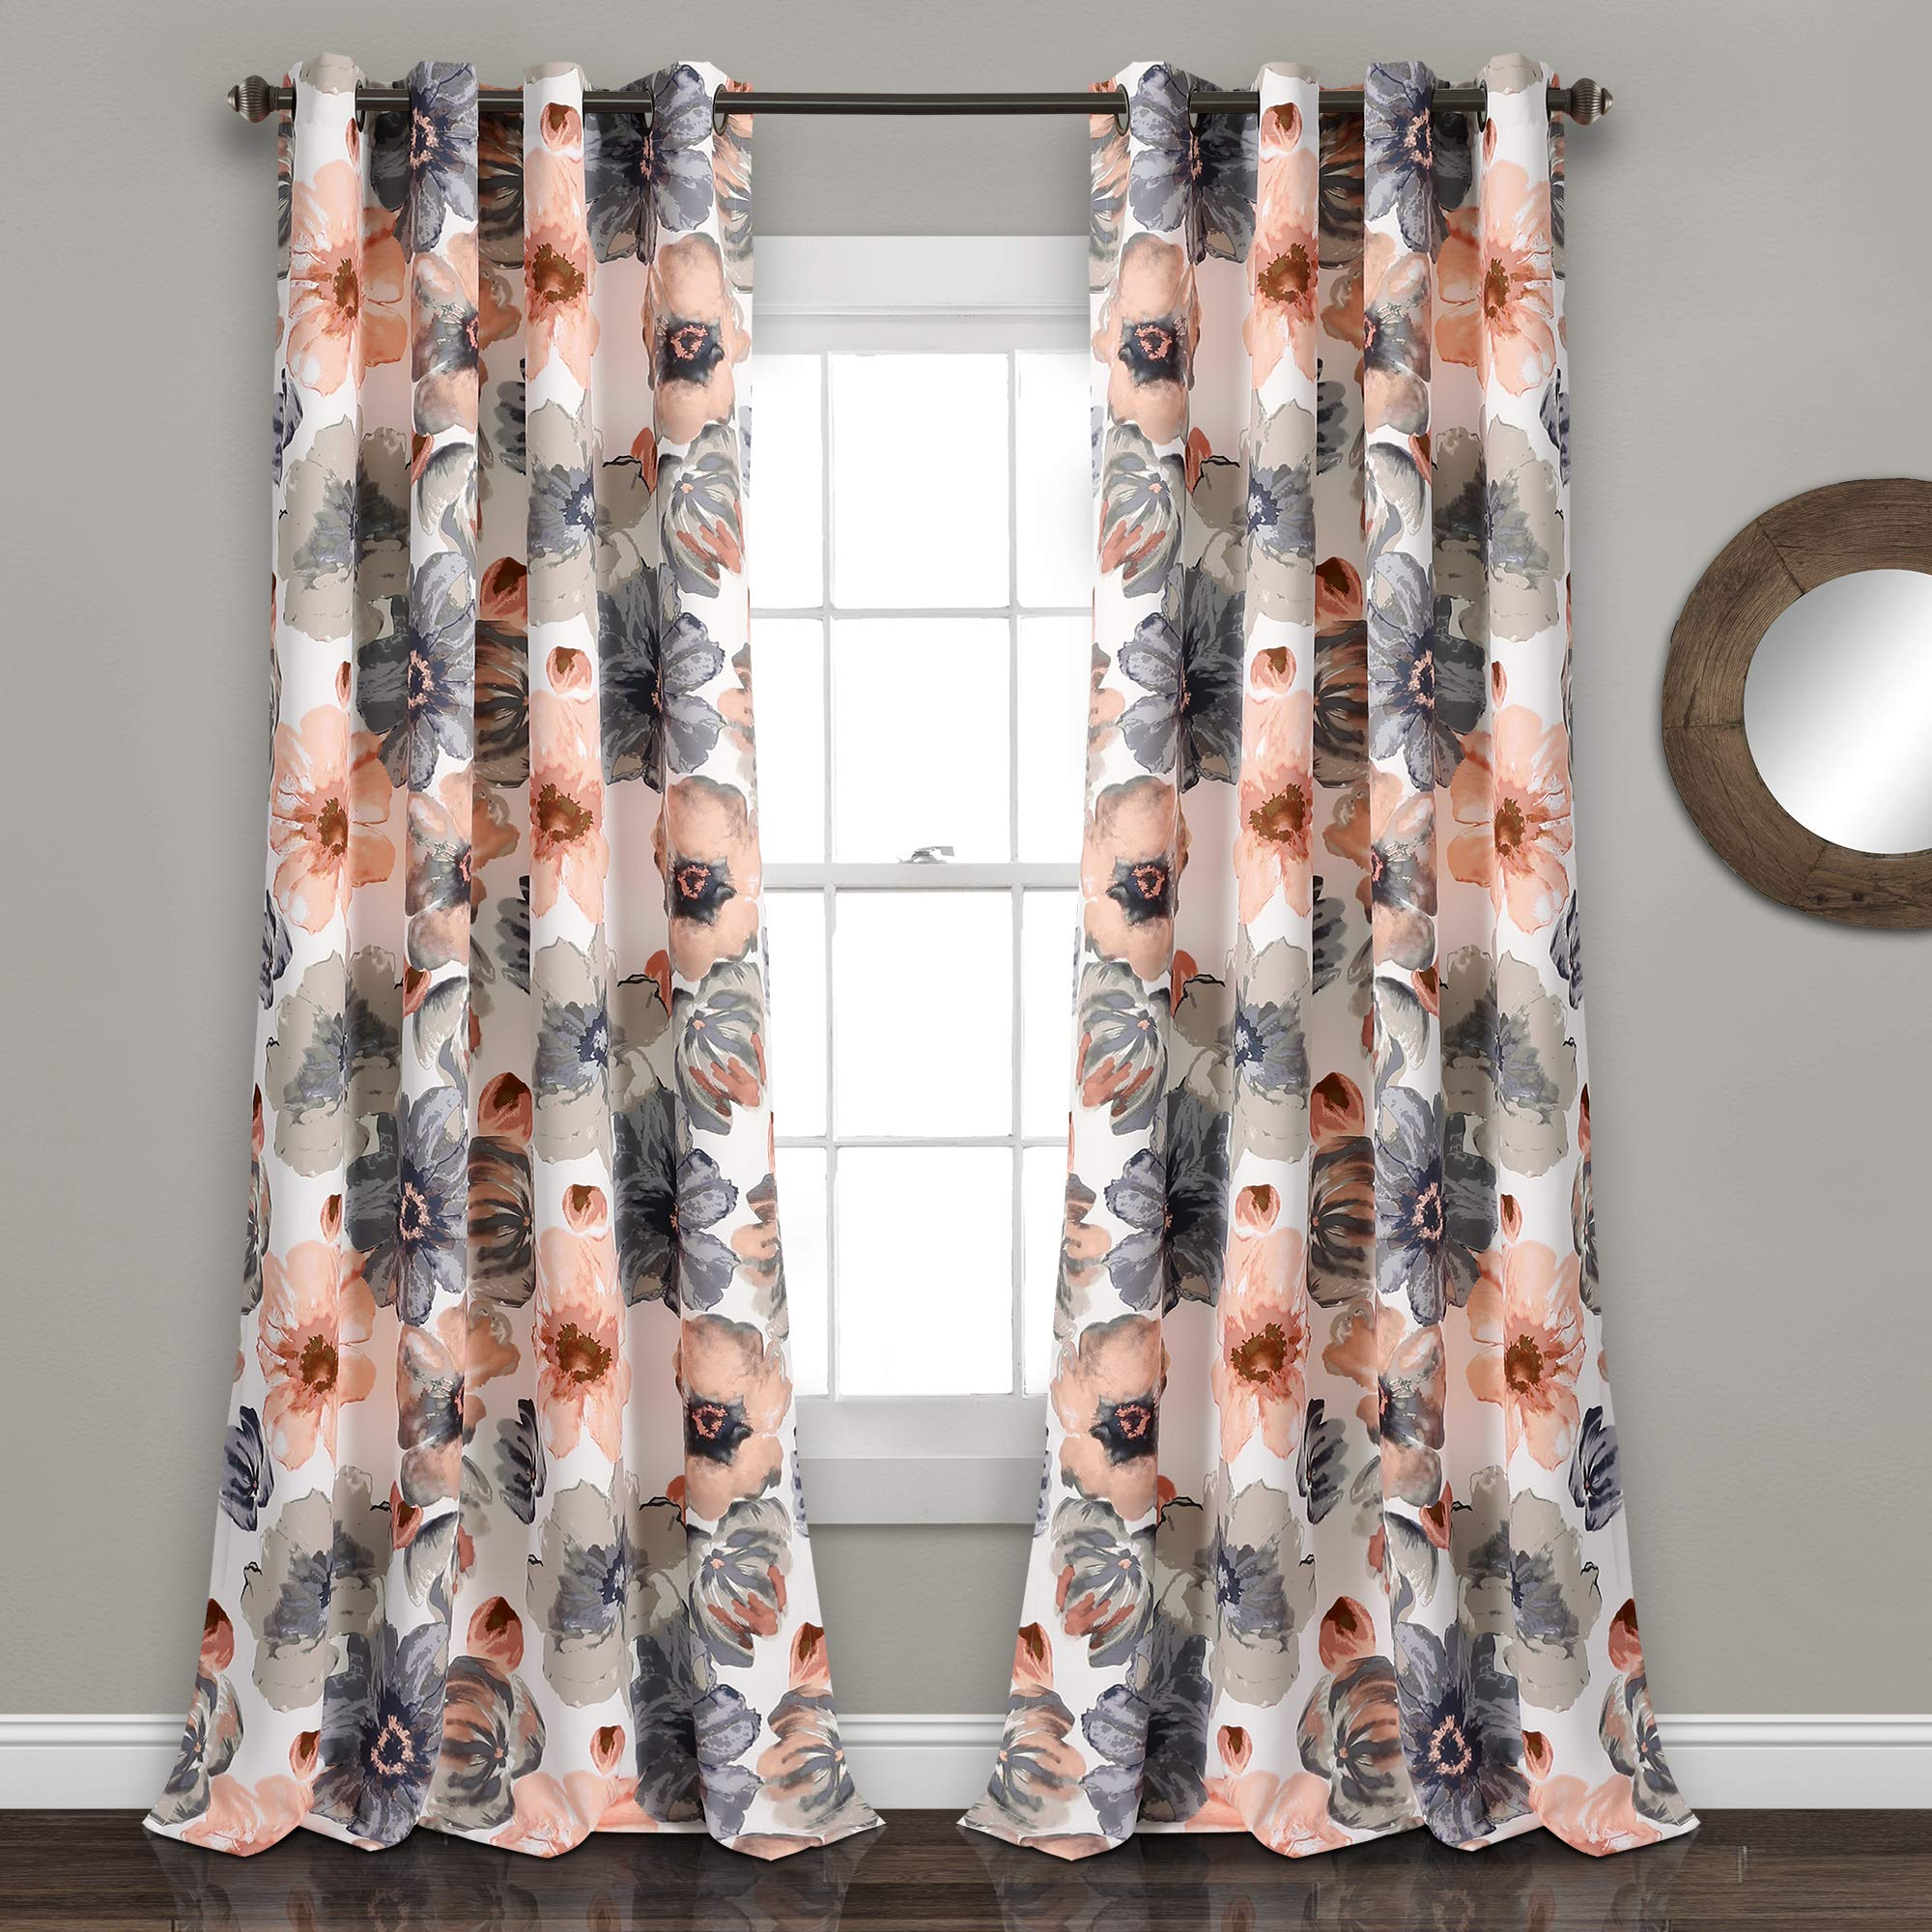 Lush Decor Leah Floral Darkening Coral and Gray Window Panel Curtain Set for Living, Dining Room, Bedroom (Pair), 108'' x 52 L by Lush Decor